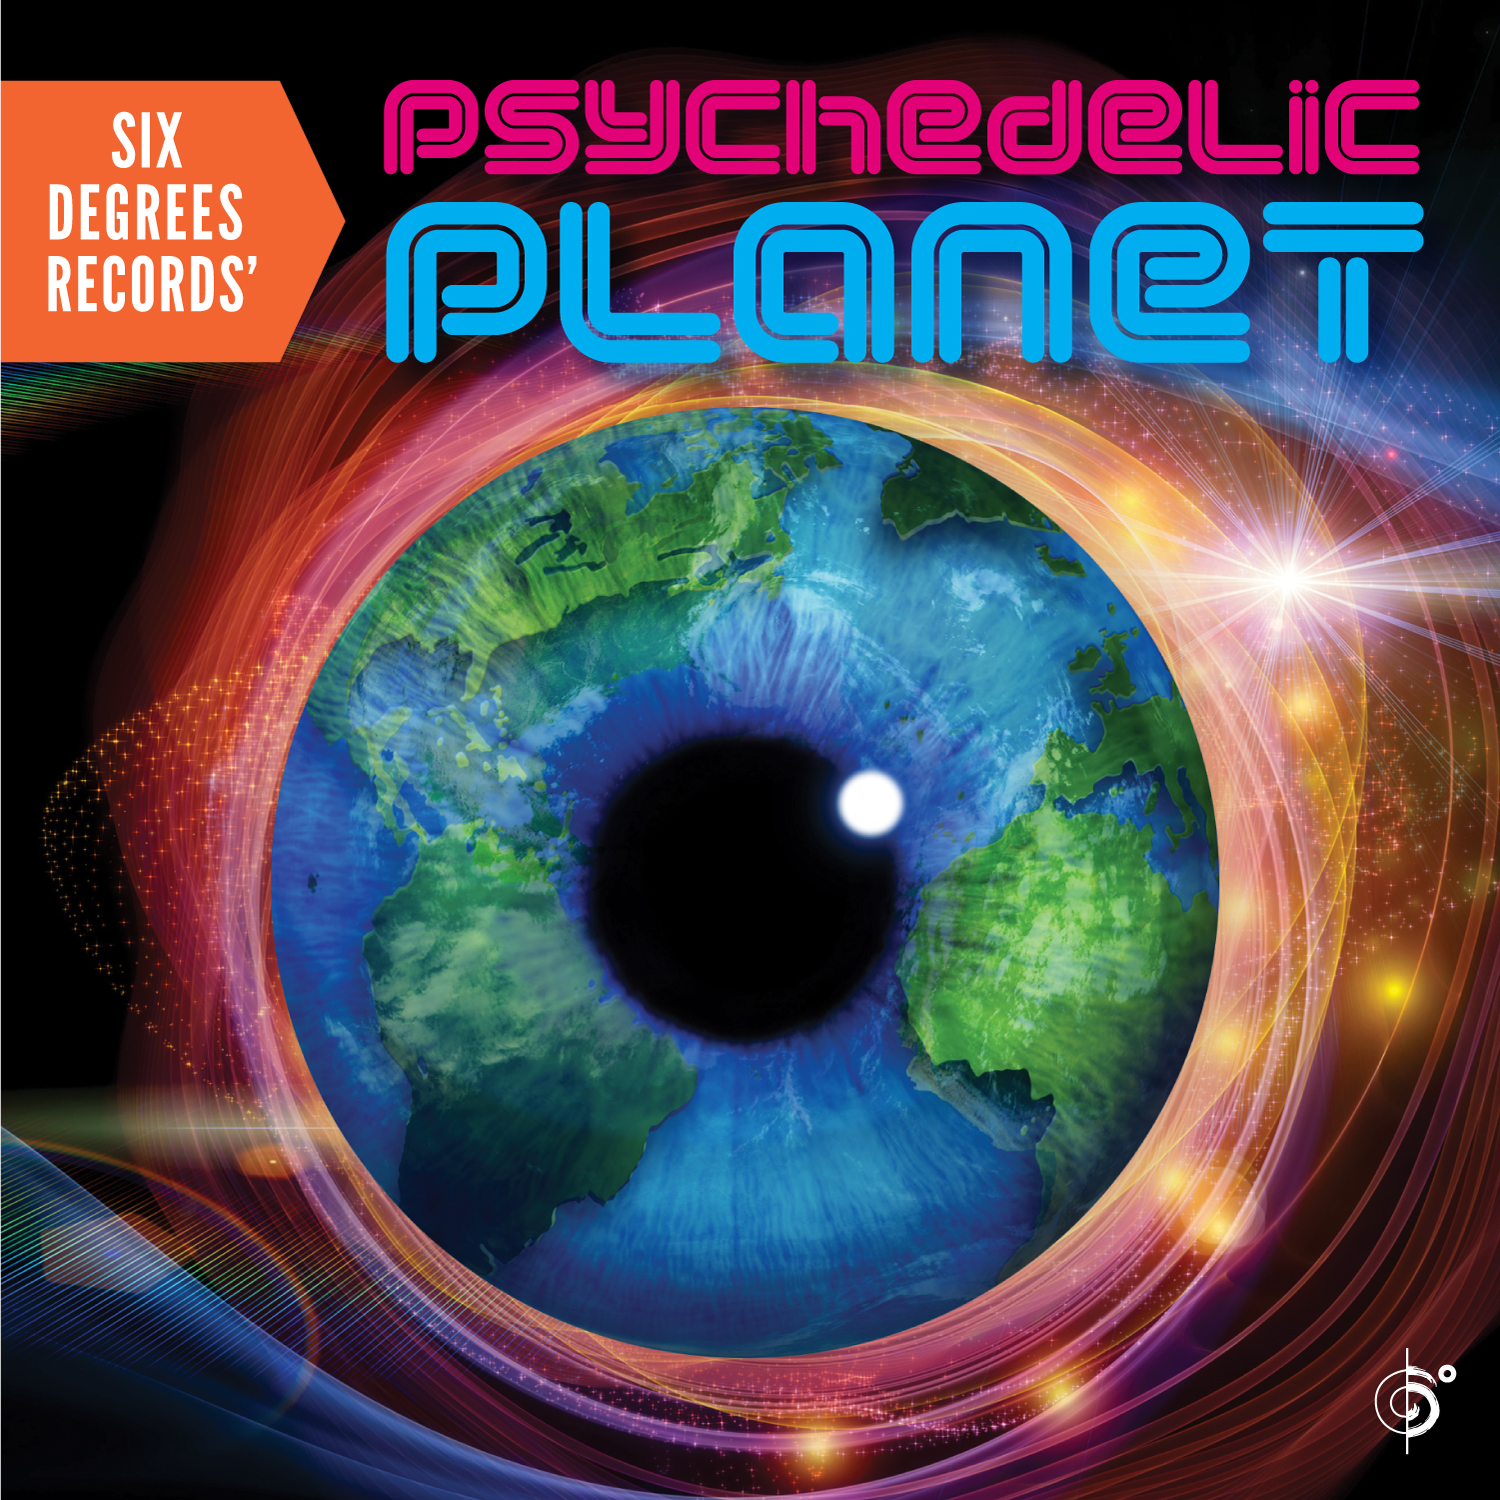 Six Degrees Records' Psychedelic Planet